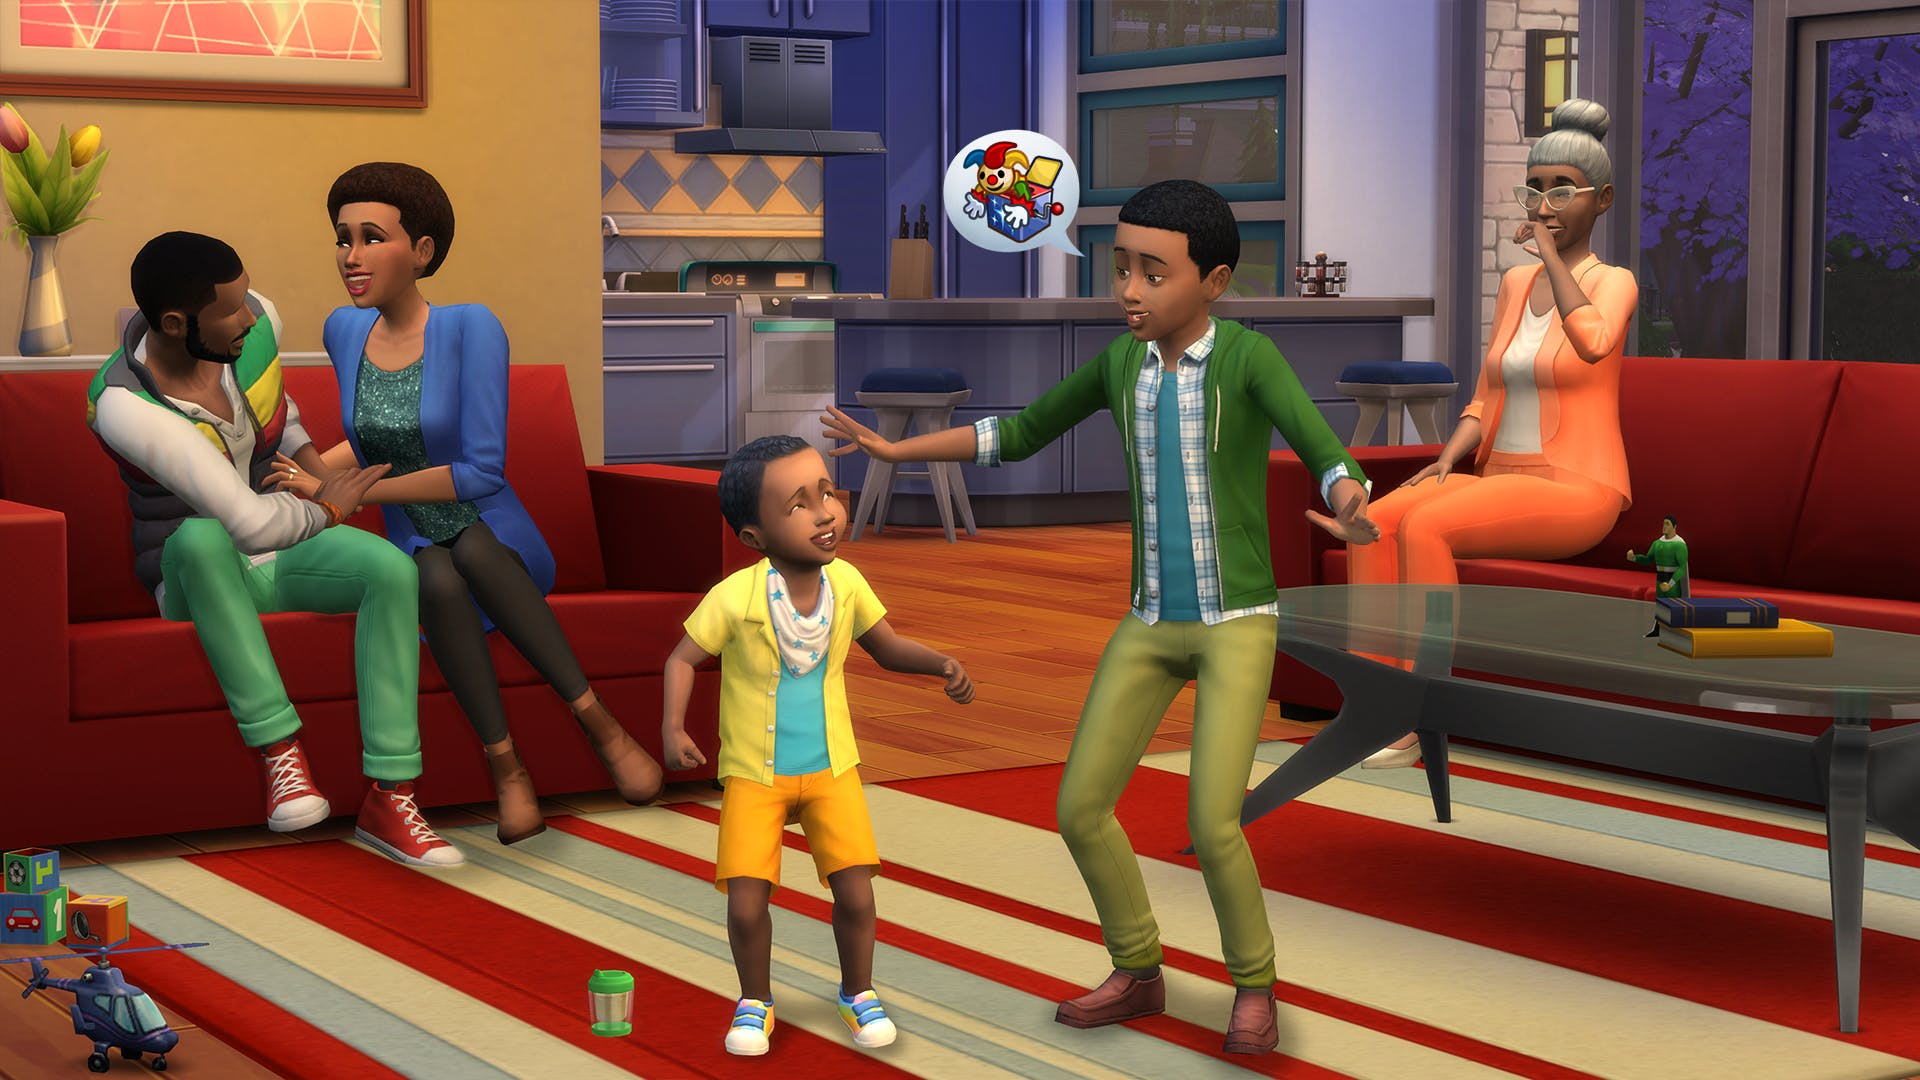 The Sims 4 Best Date Night Games